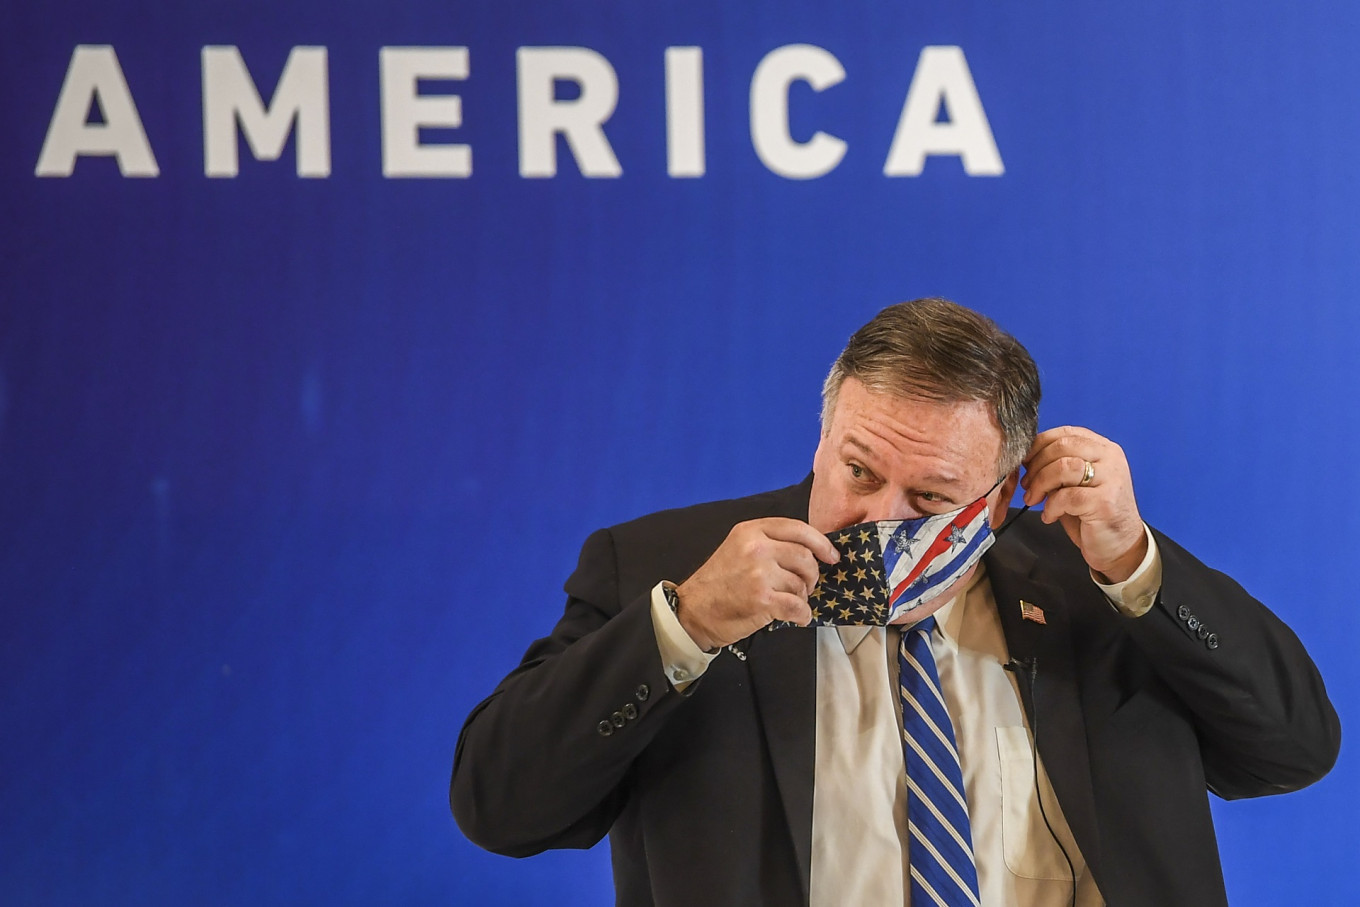 Pompeo urges VOA to broadcast 'American exceptionalism' amid pushback